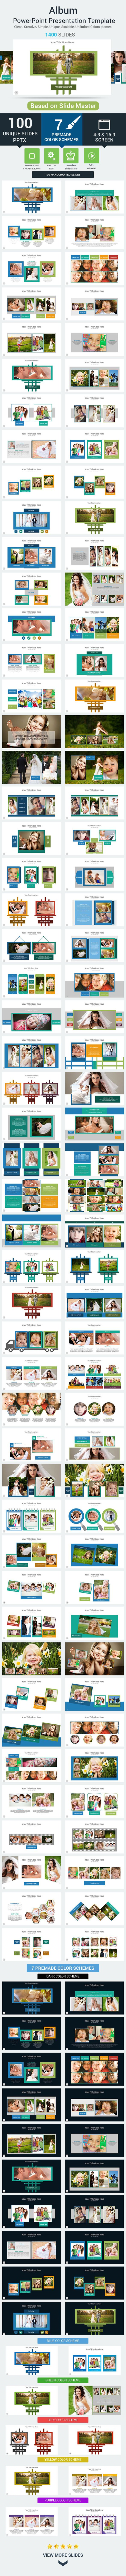 Album PowerPoint Presentation Template - Creative PowerPoint Templates